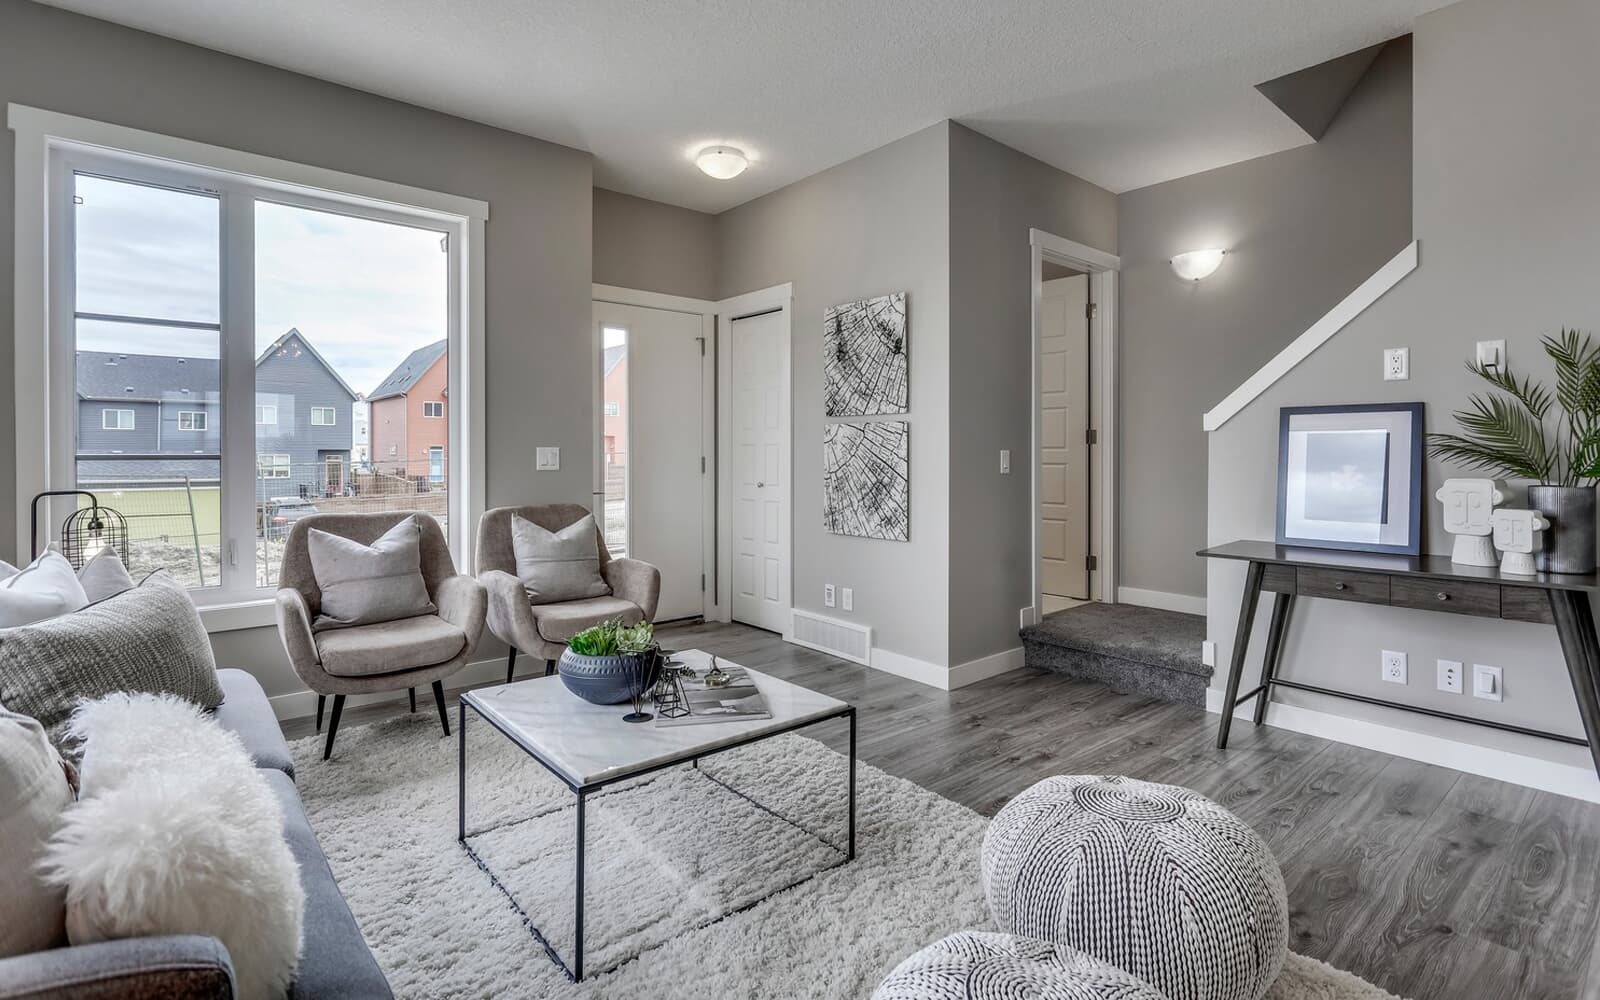 living-room-saffron-octave-livingston-calgary-alberta